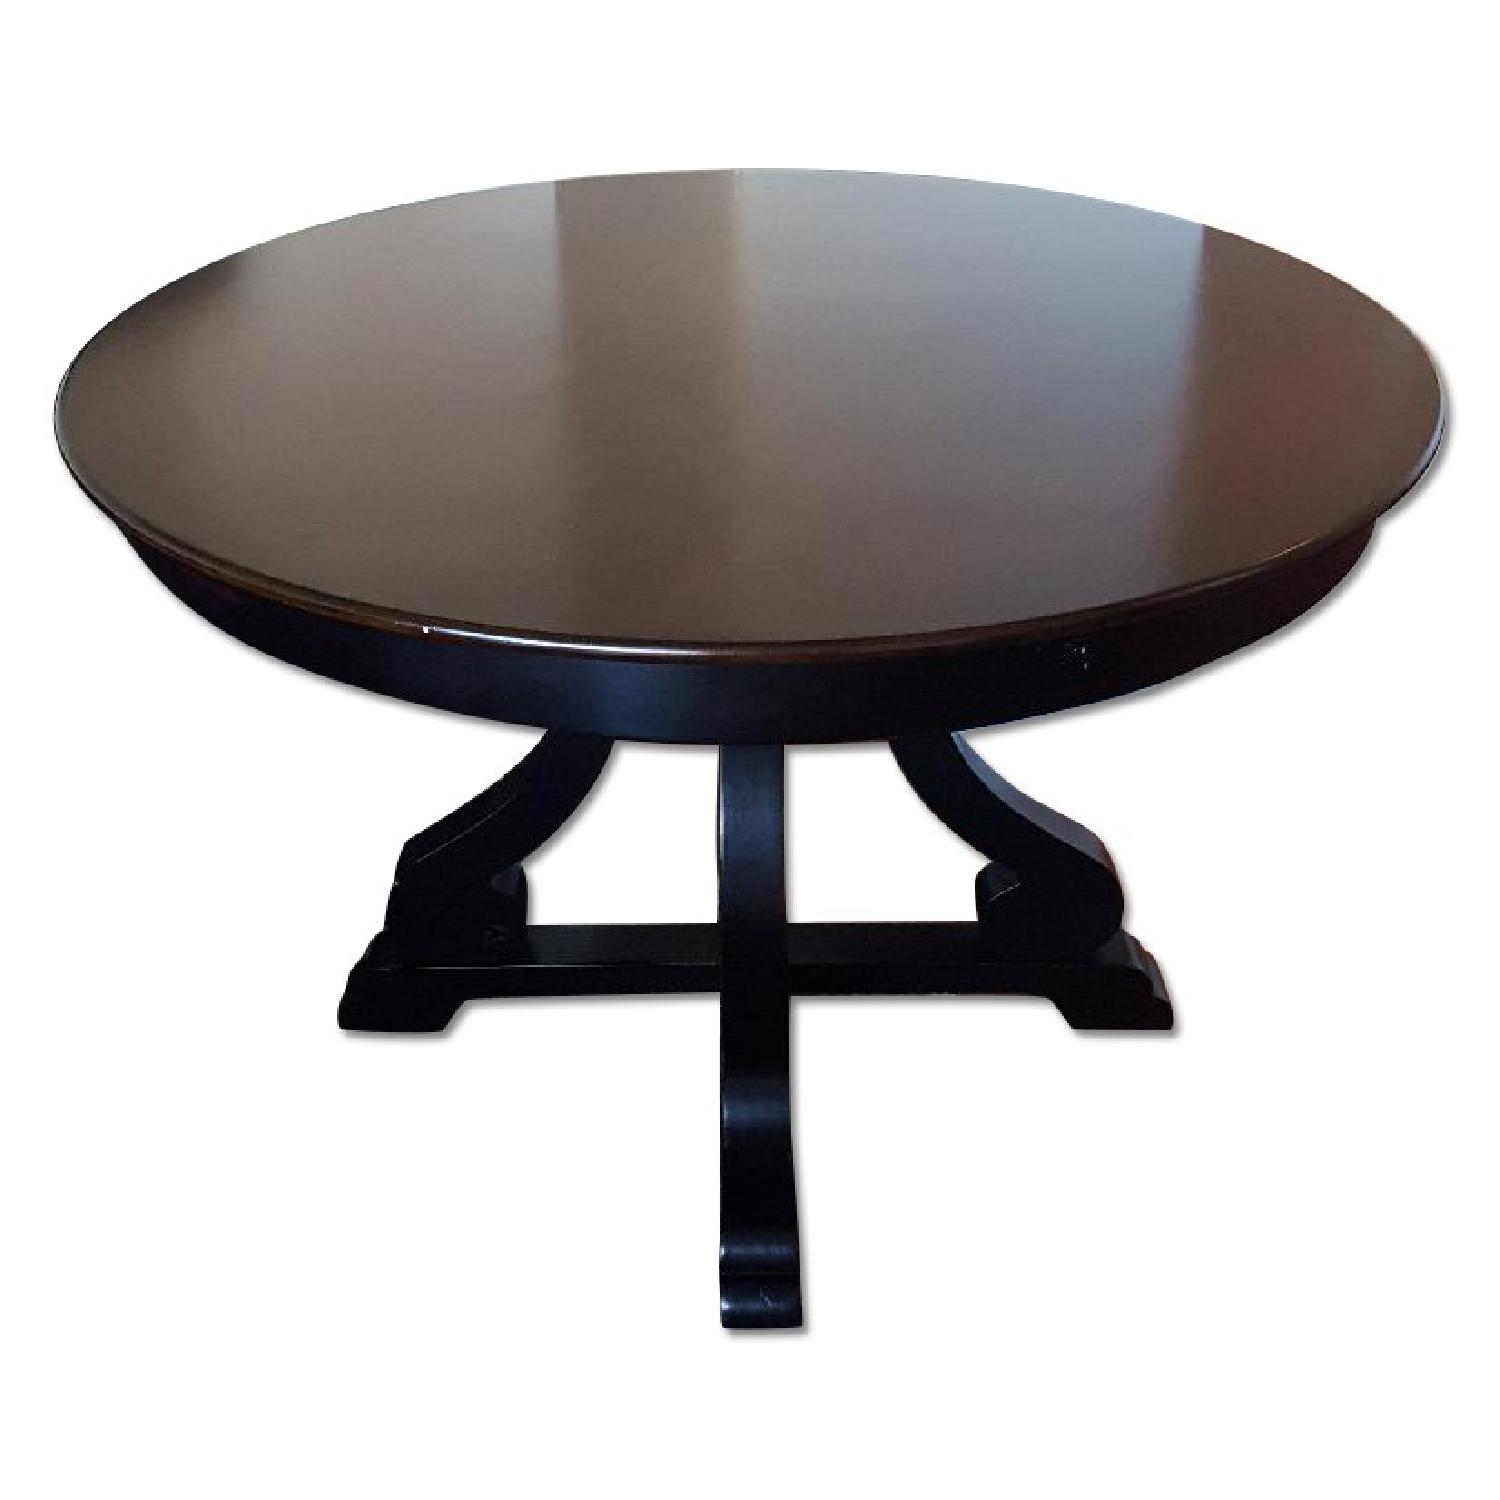 Pier 1 Round Kitchen Table w Metal Frame amp Glass Top  : 1500 1500 frame 0 from www.aptdeco.com size 1500 x 1500 jpeg 83kB